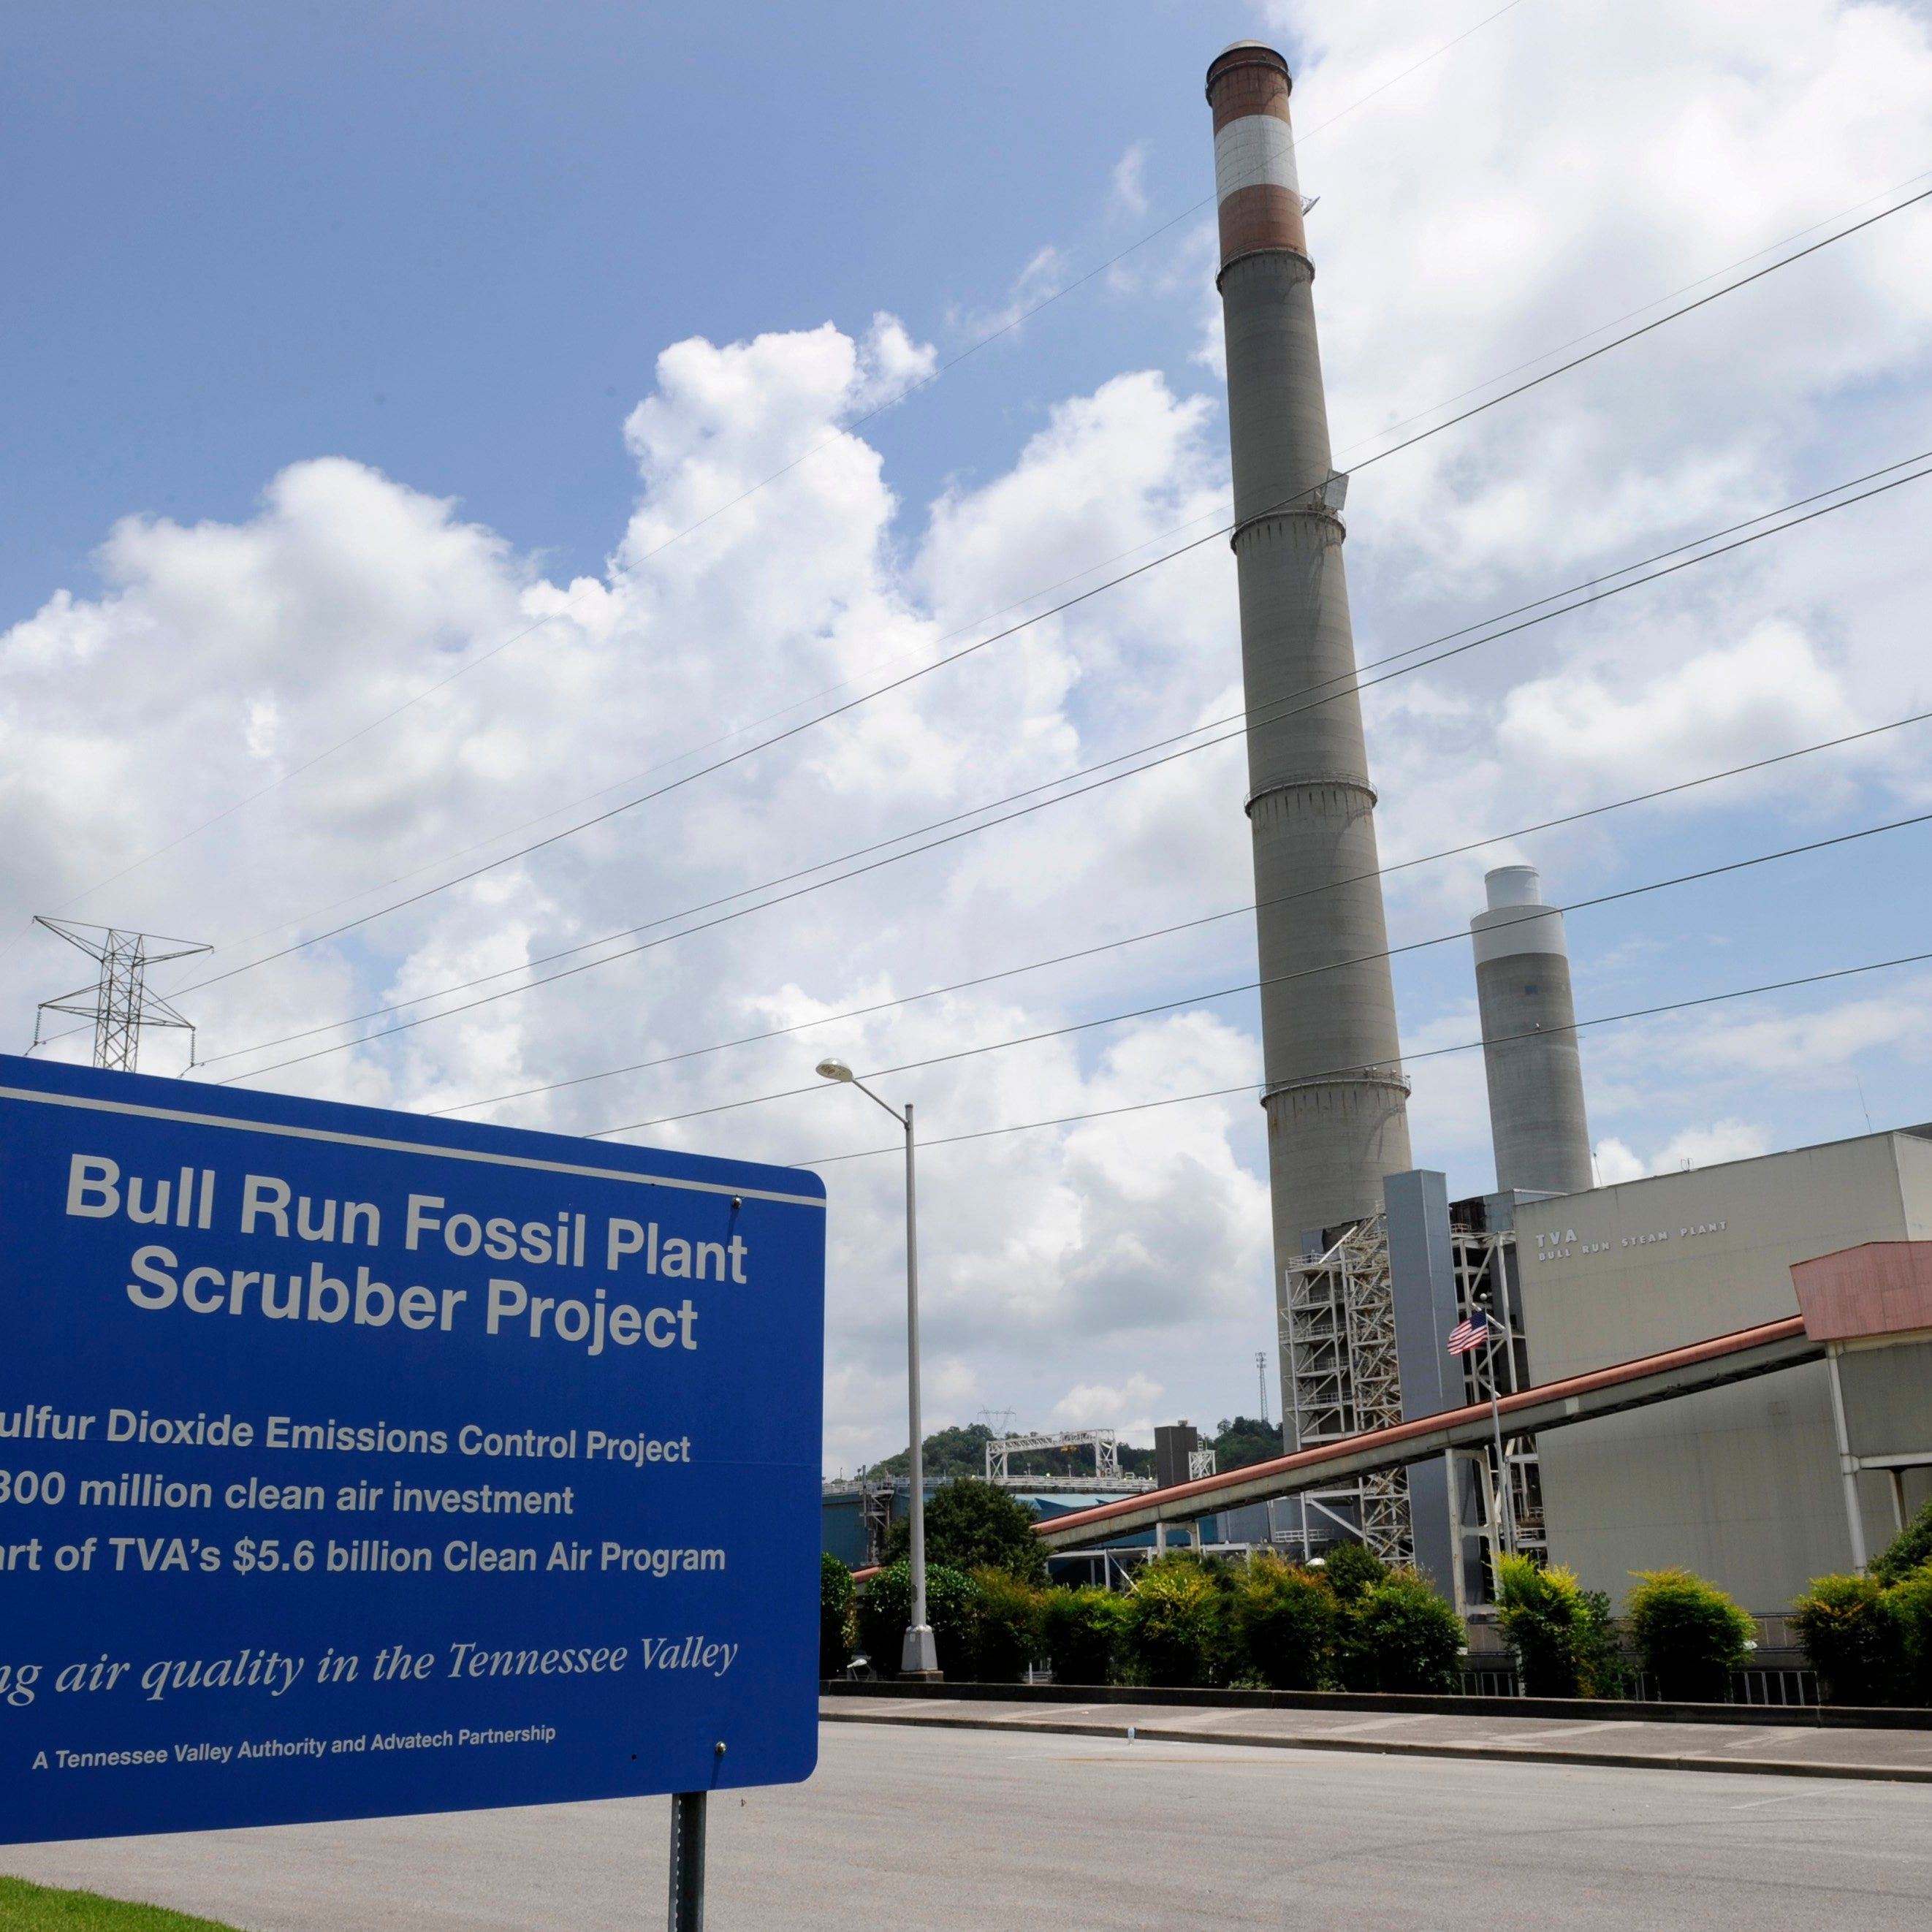 We demand answers about Bull Run coal ash, Anderson County tells TVA